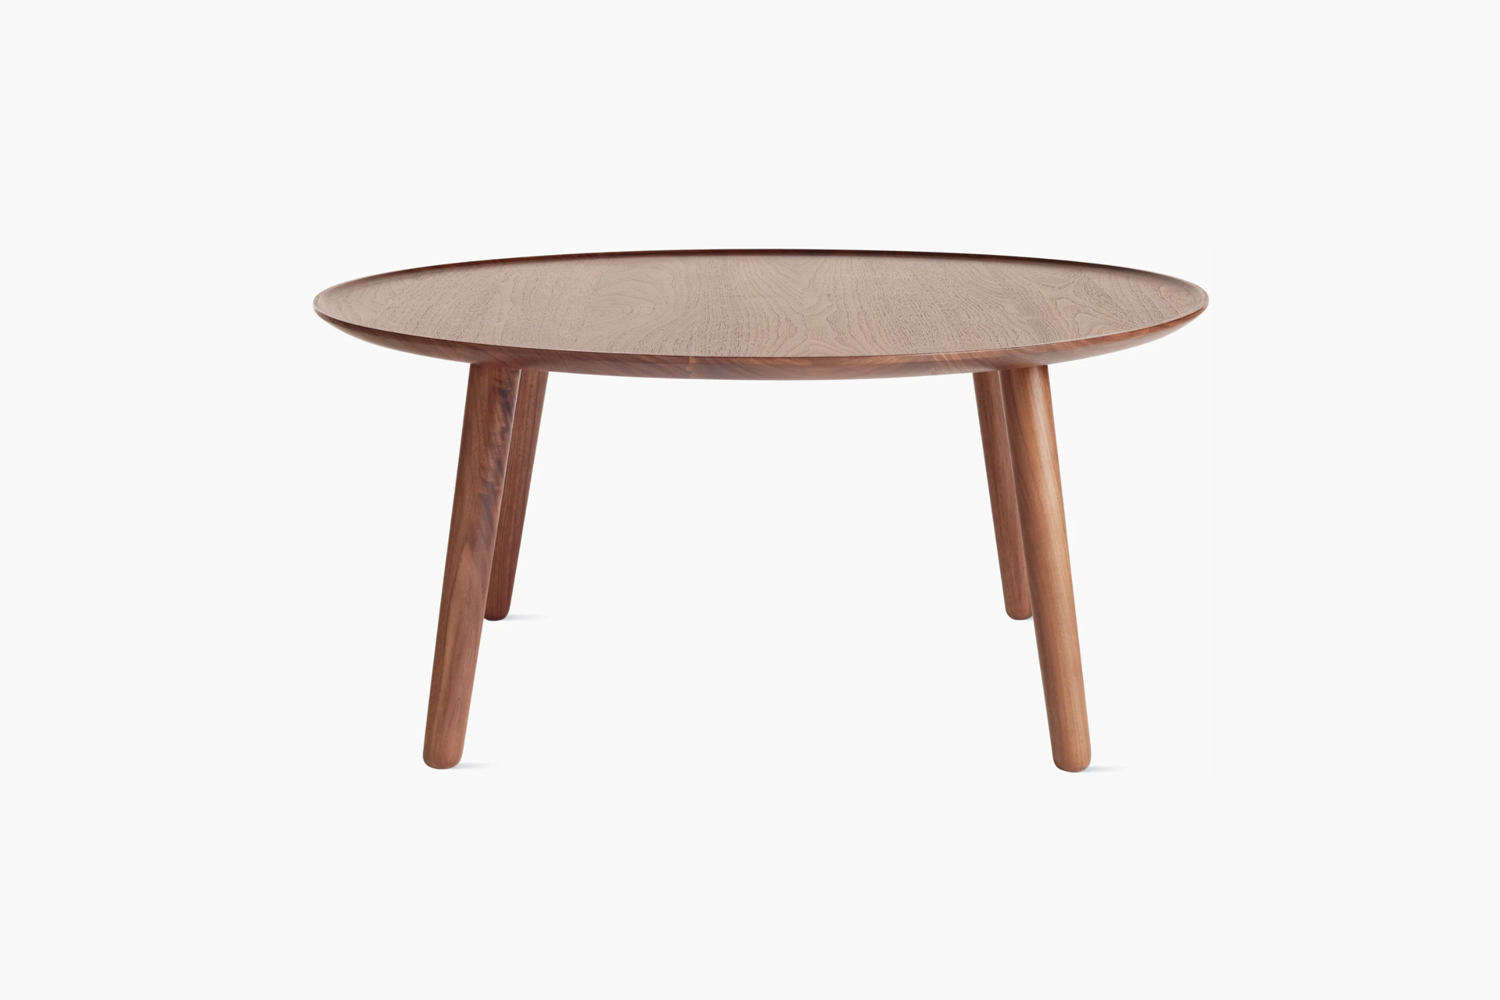 The walnut Edge Coffee Table is $995 at Design Within Reach.